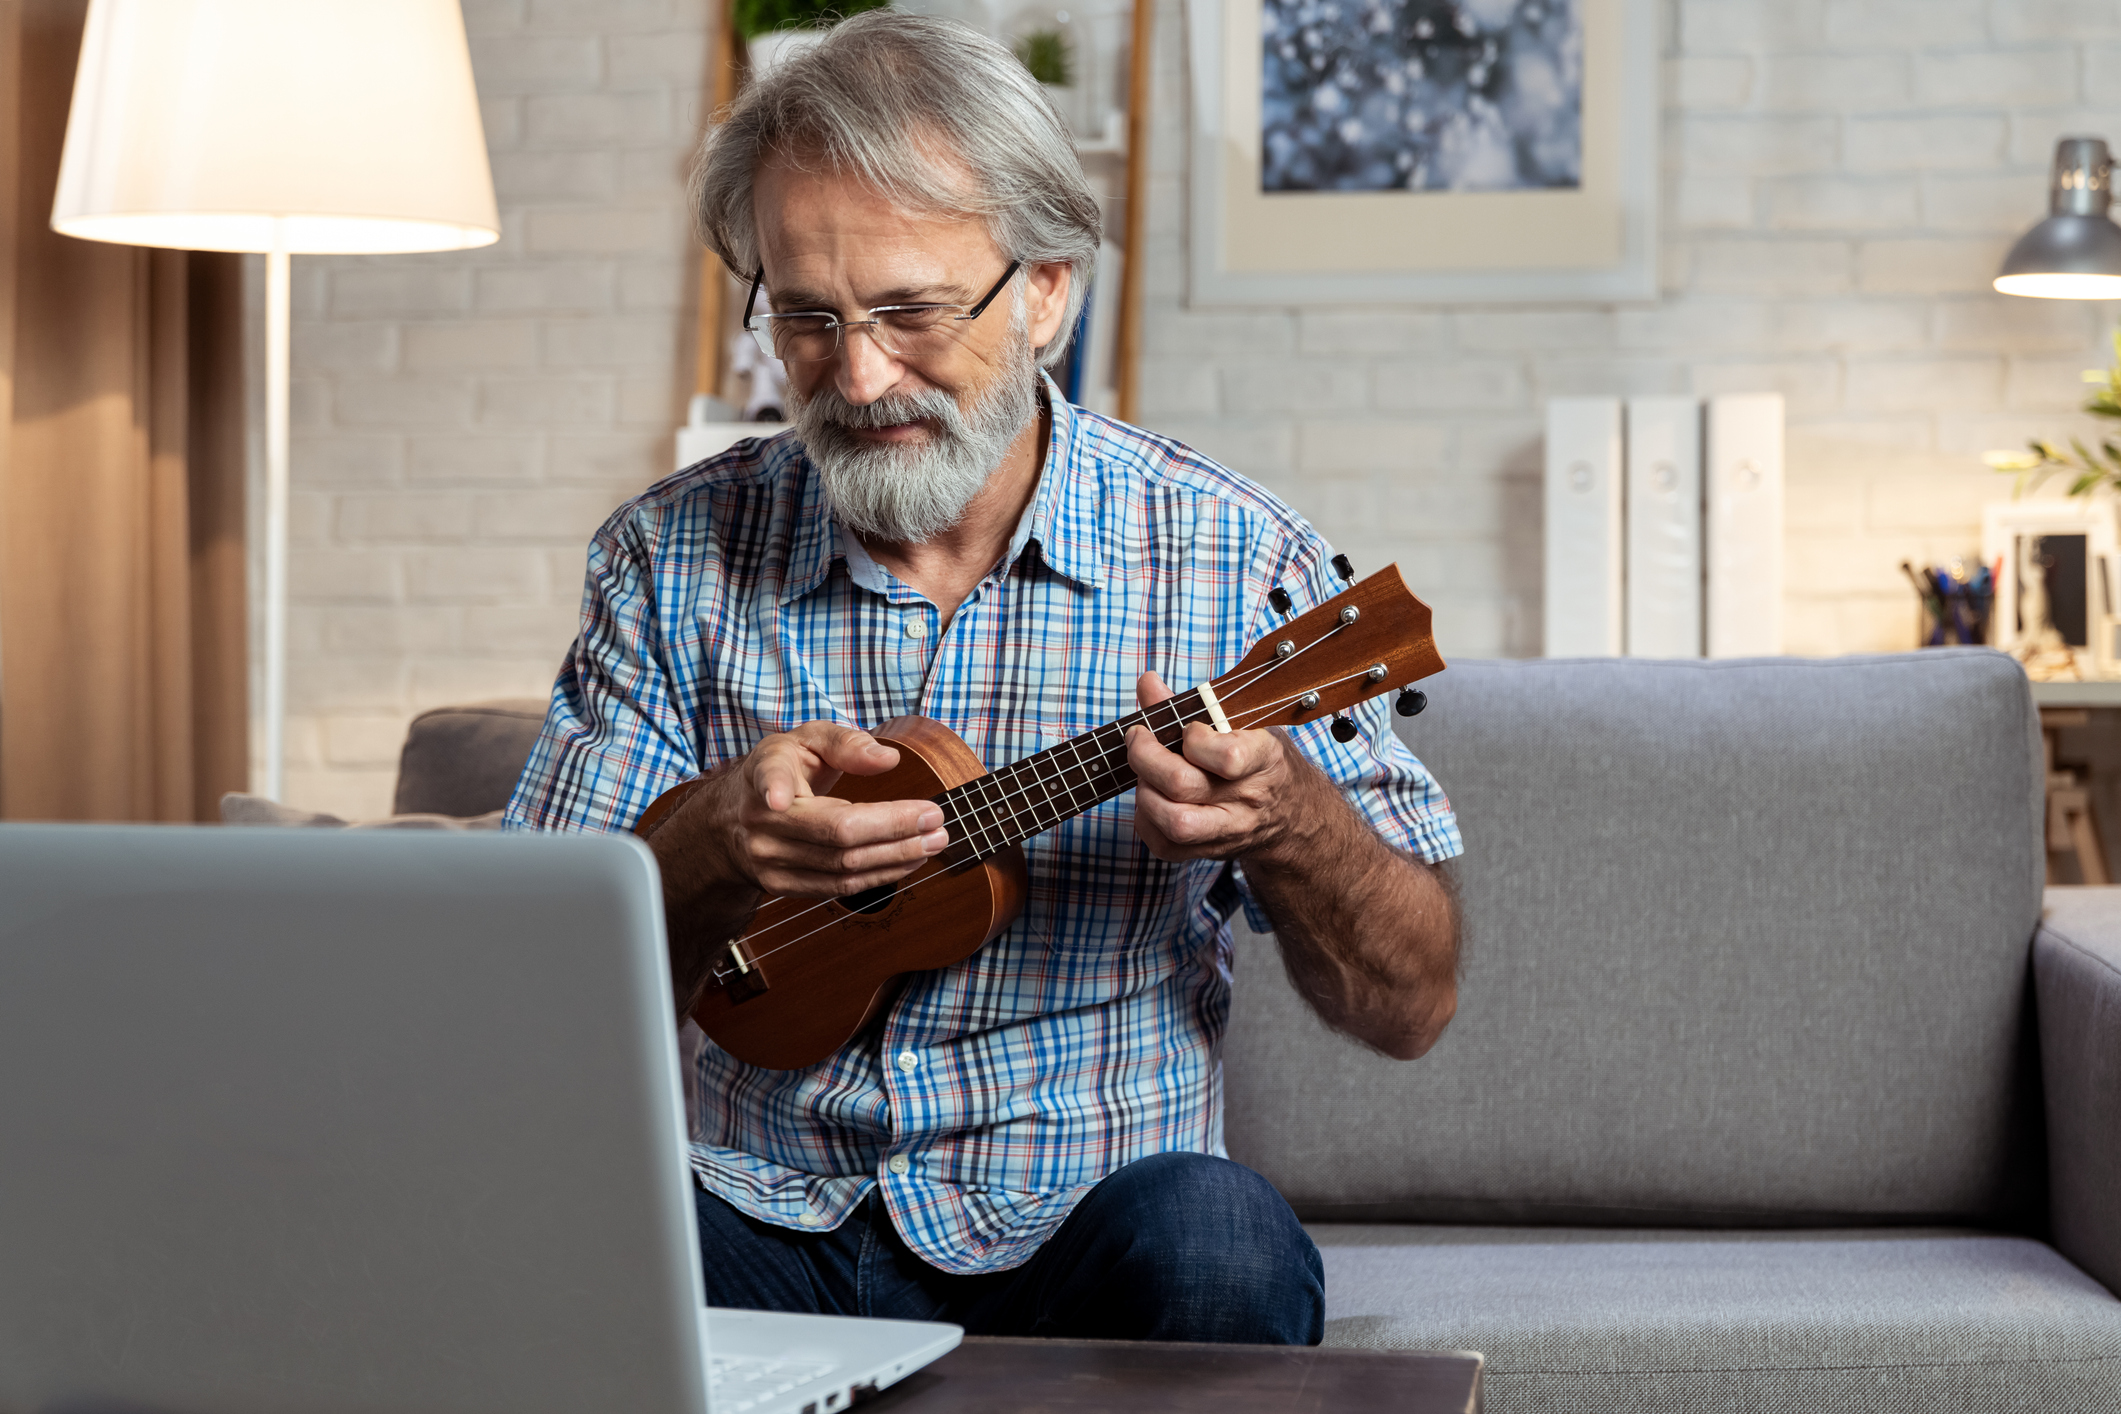 Alzheimer's to stroke: What playing an instrument does for your brain